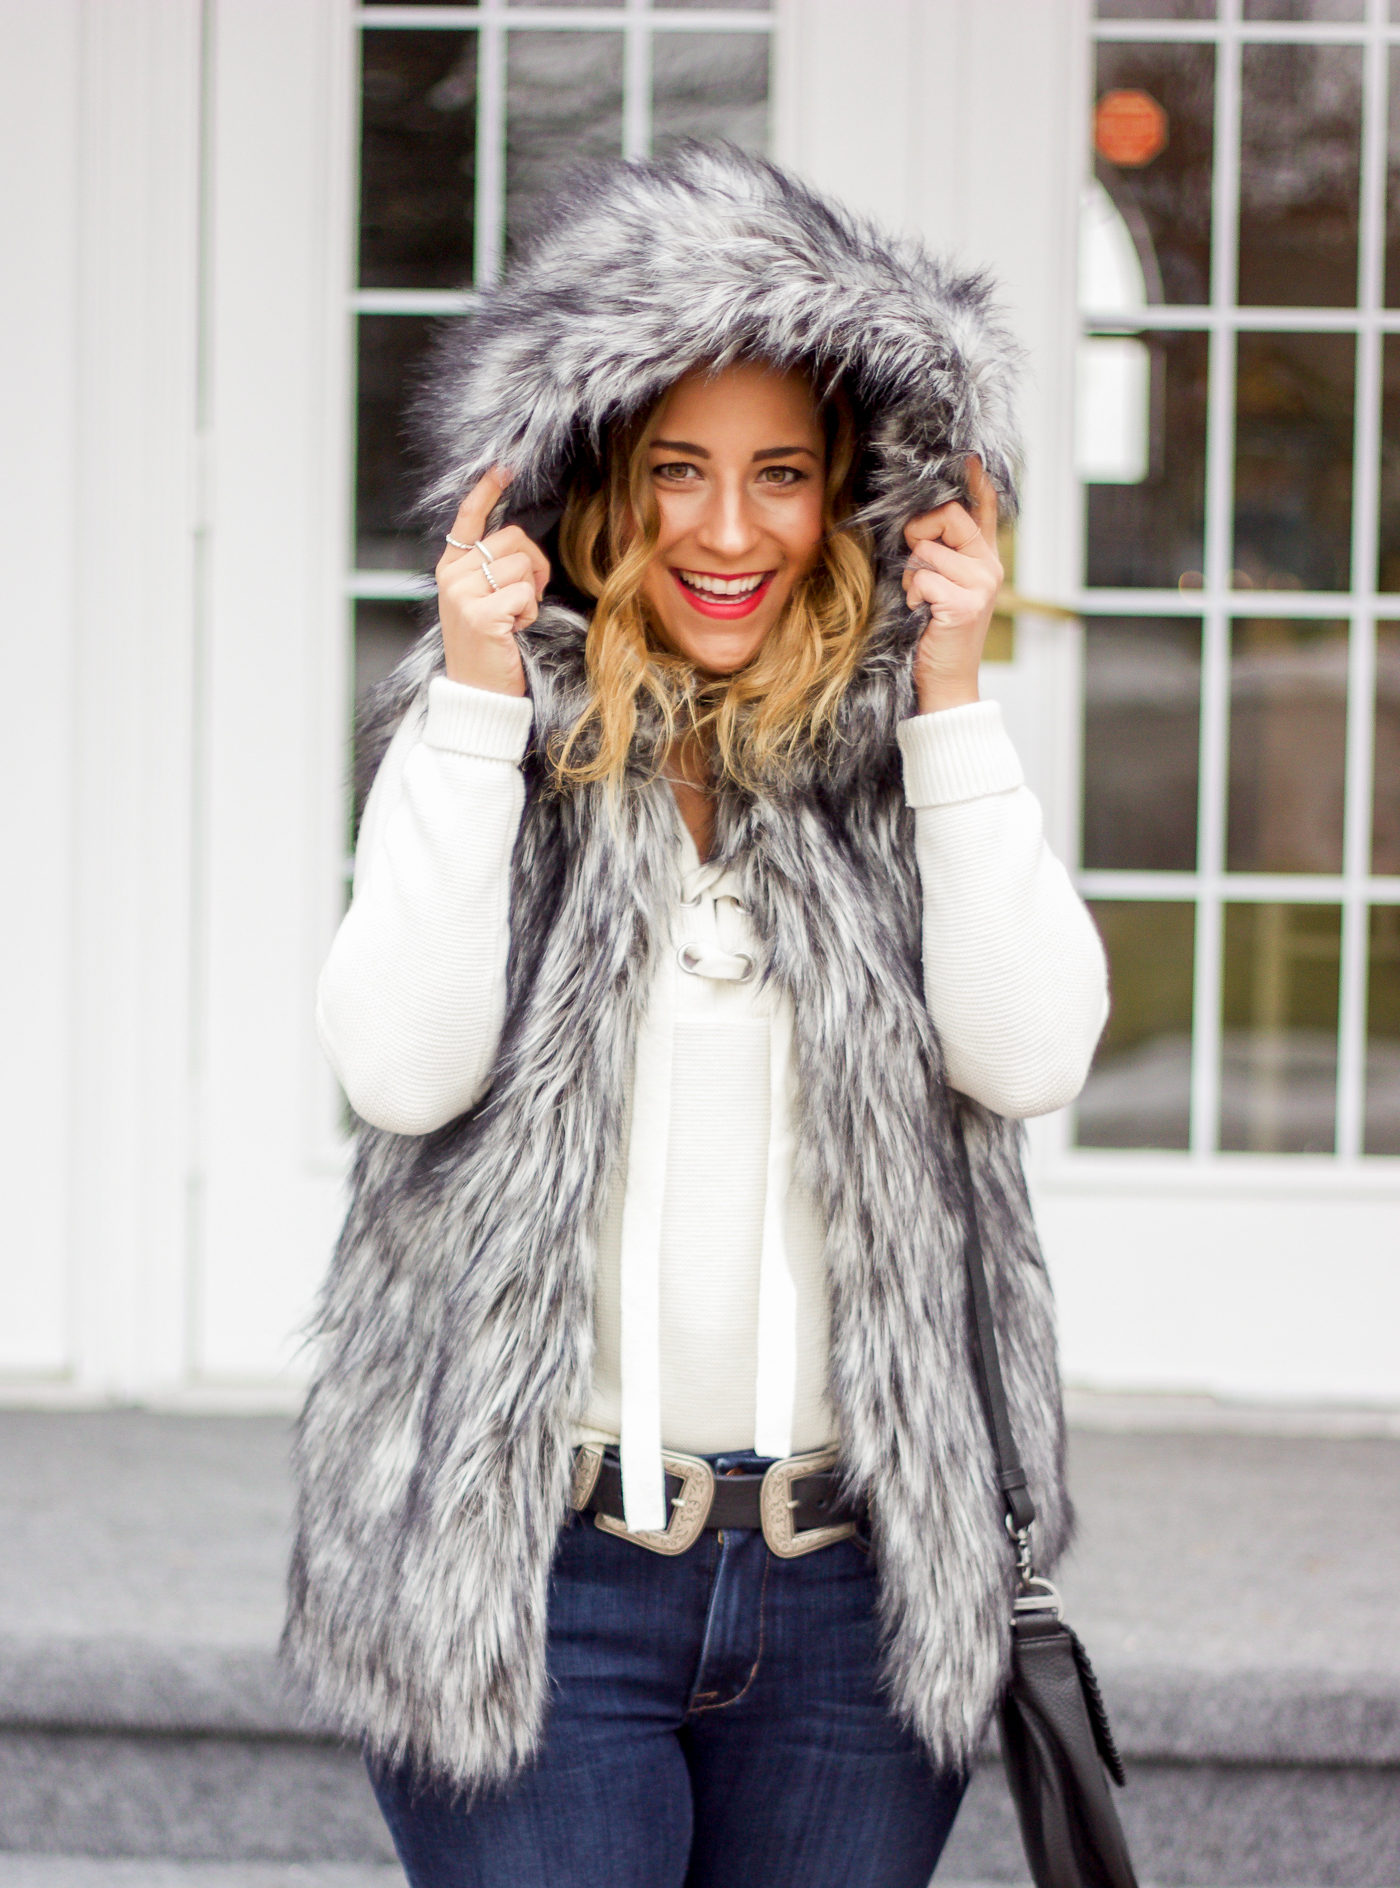 Jackie Goldhar is a top Canadian fashion and lifestyle blogger and she's wearing a faux fur vest with a hood from aritzia